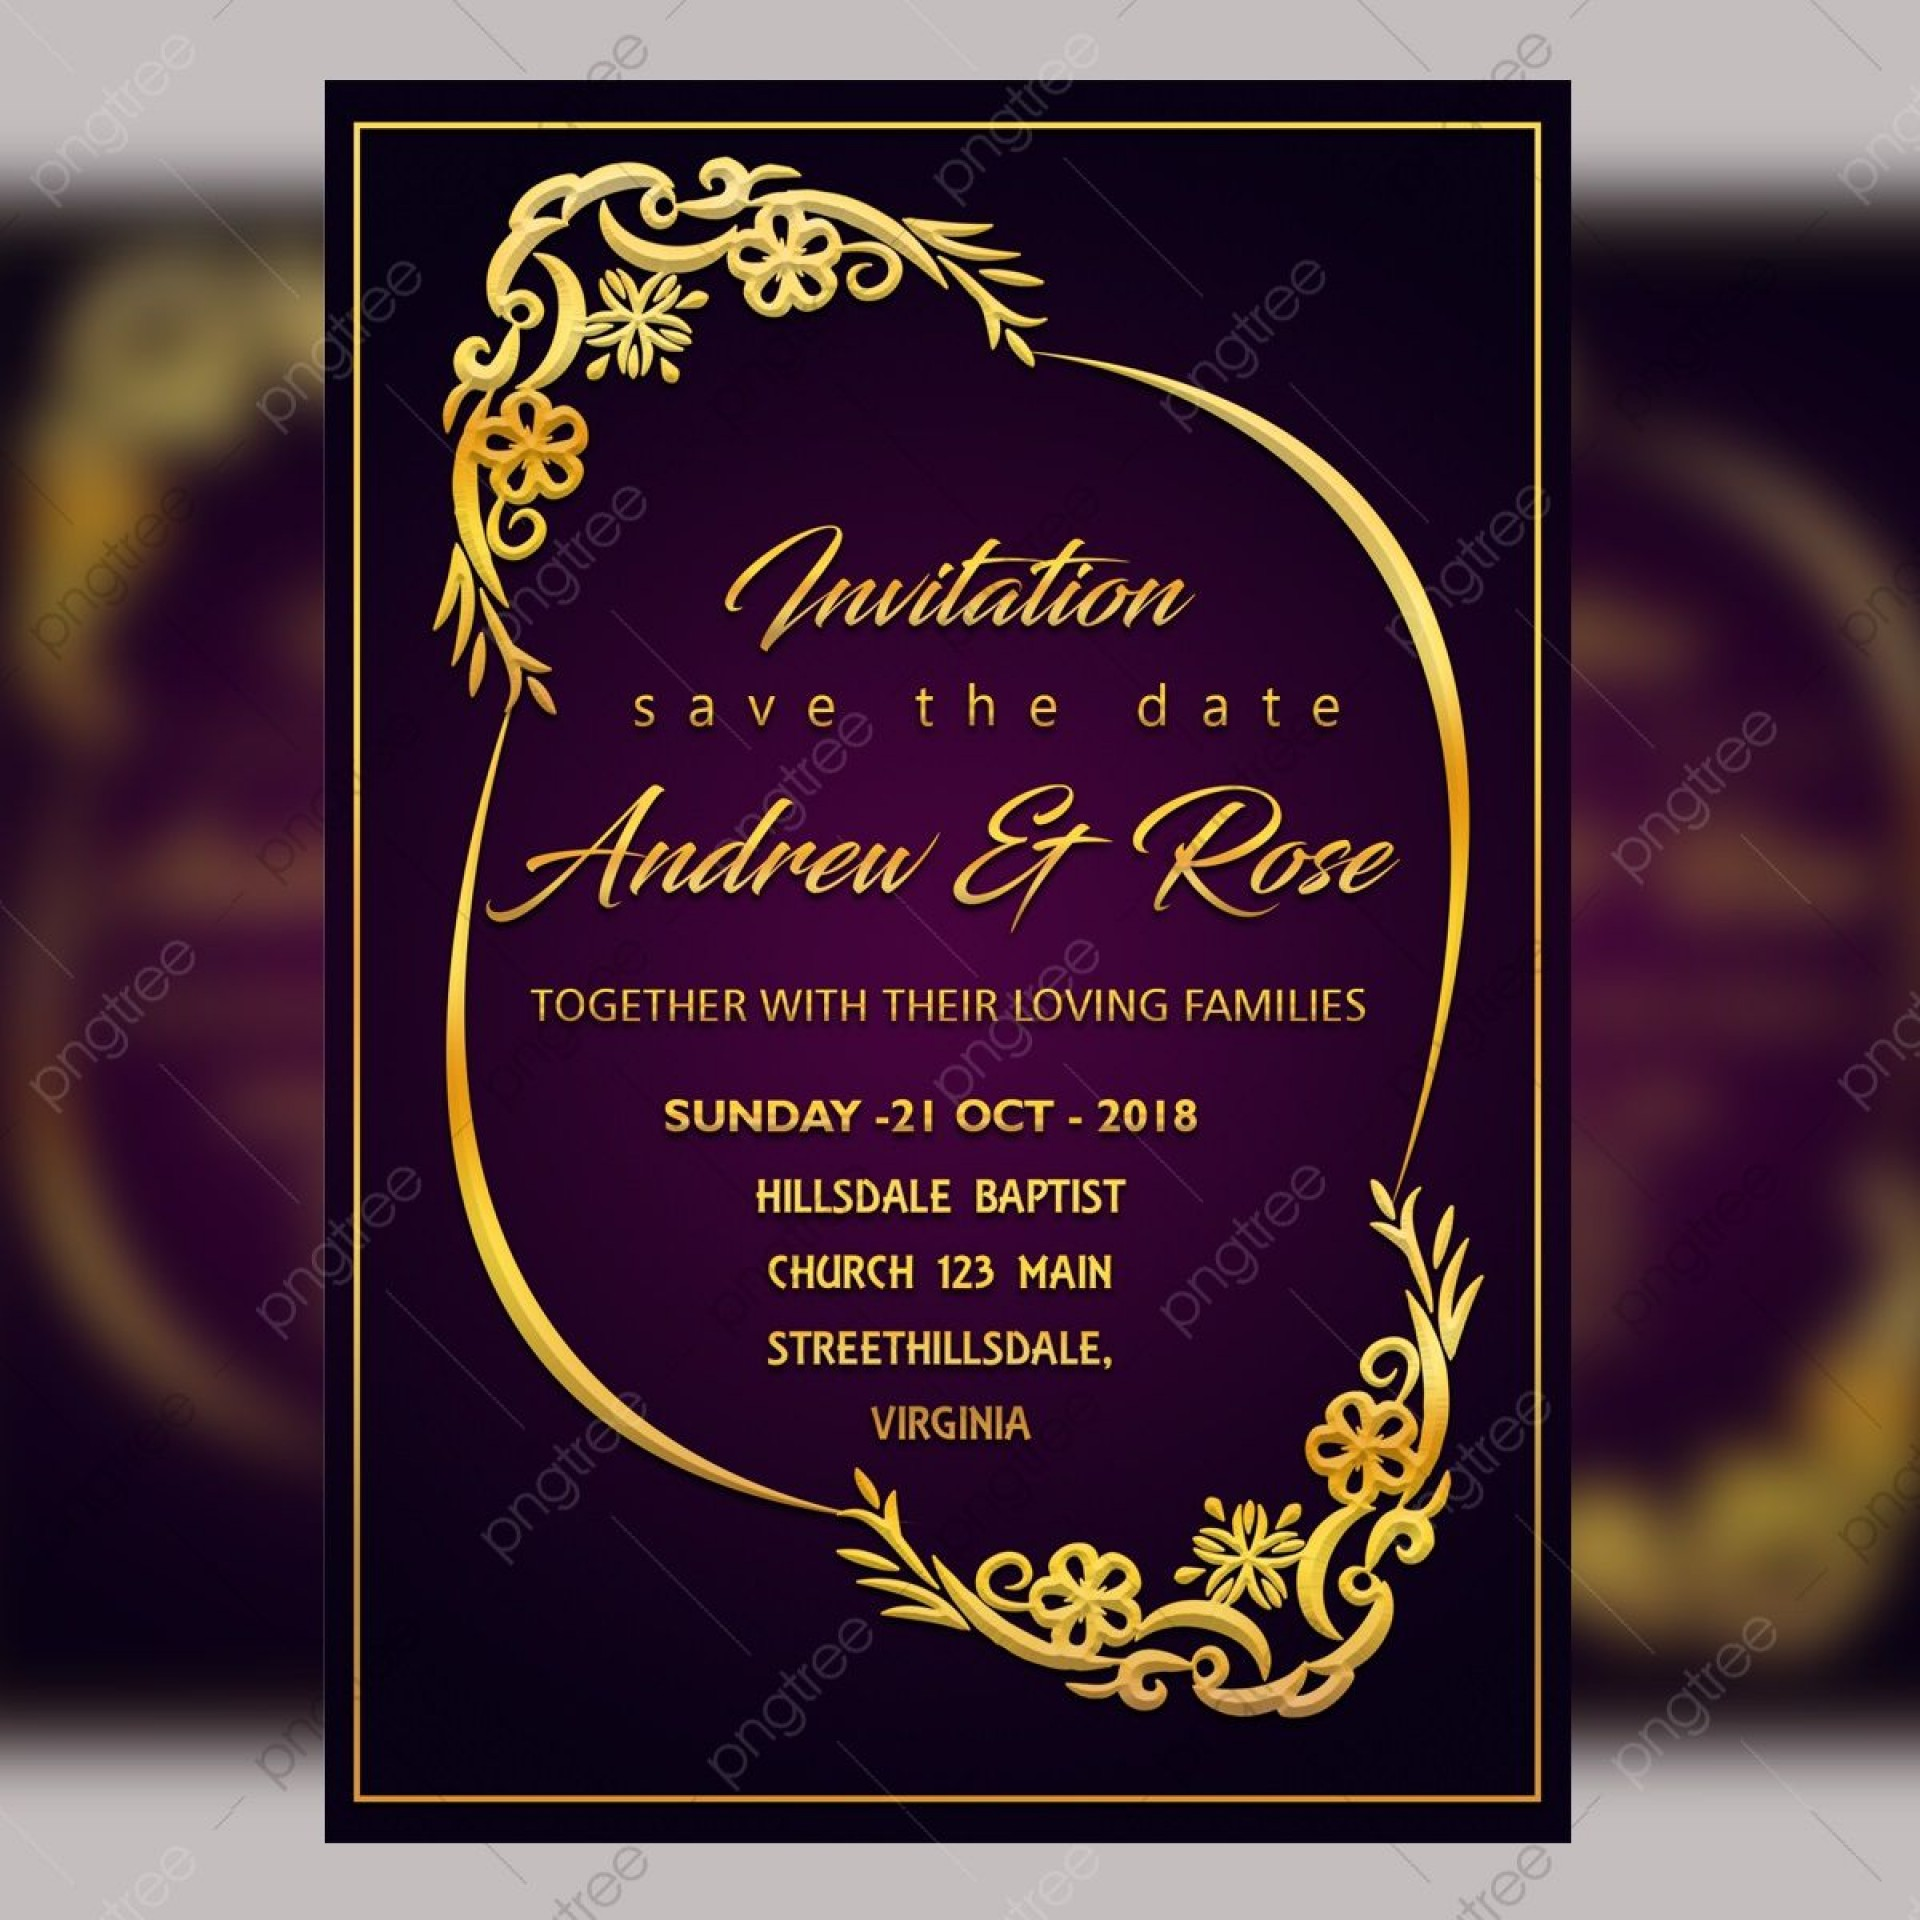 009 Unbelievable Free Download Invitation Card Template Psd Sample  Indian Wedding1920